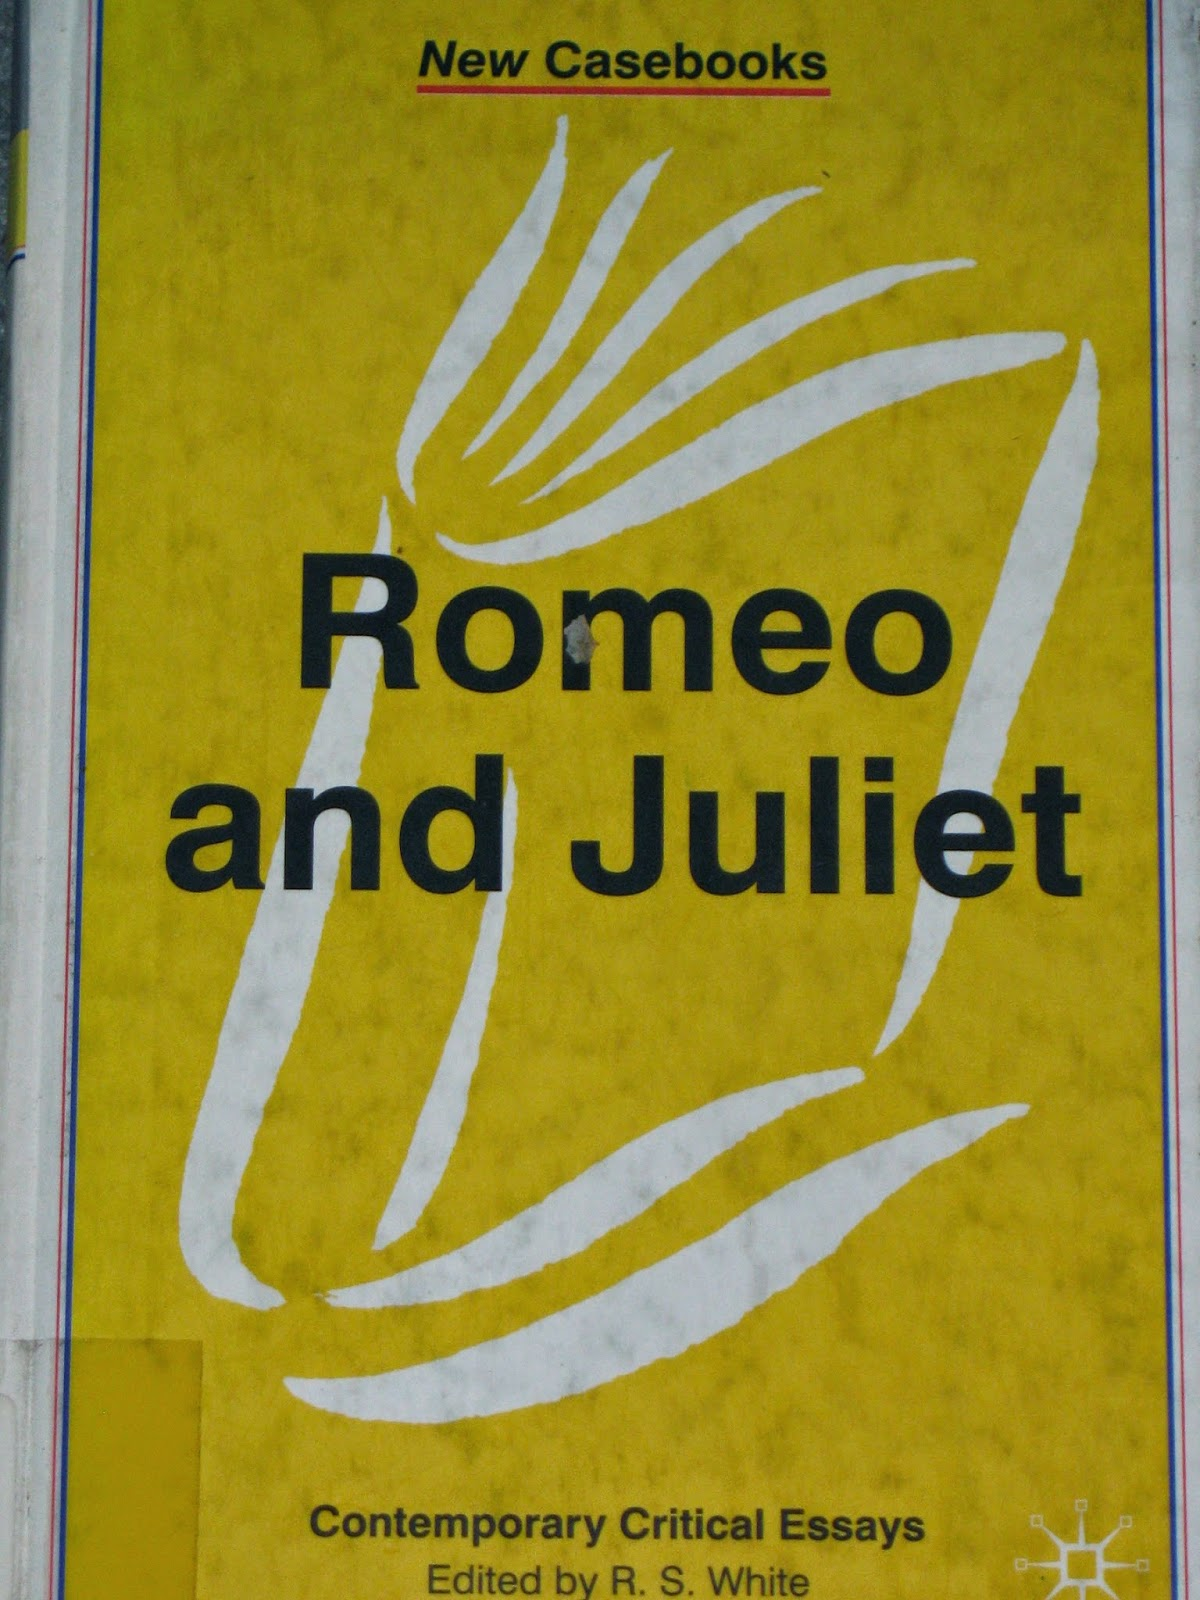 mostly shakespeare but also some occasional nonsense romeo and juliet edited by r s white this is a volume in the new casebooks series and is a collection of essays on romeo and juliet